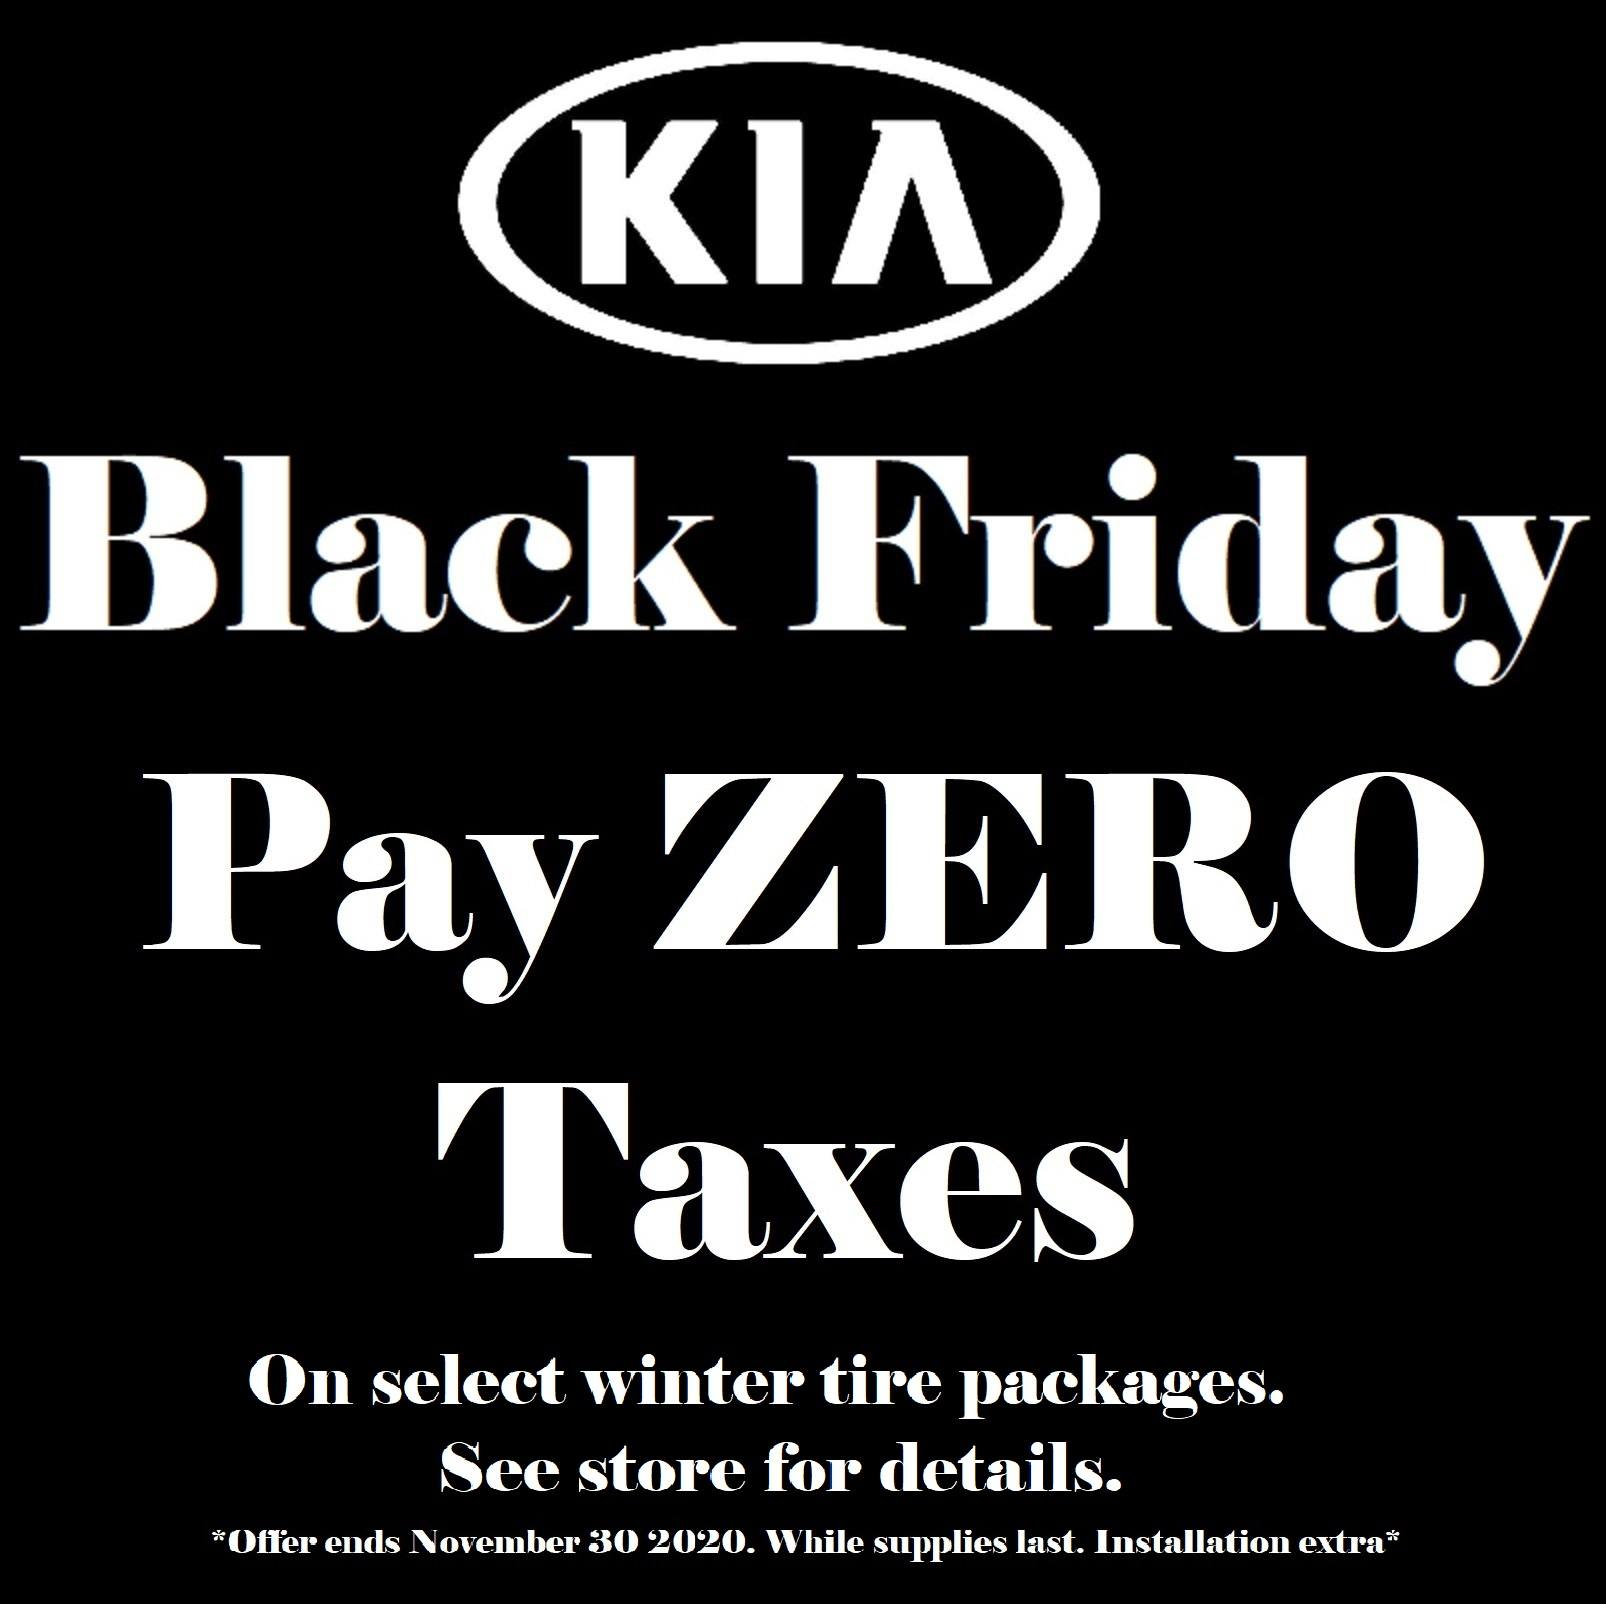 Black Friday Pay Zero Taxes on Select Winter Tire Packages